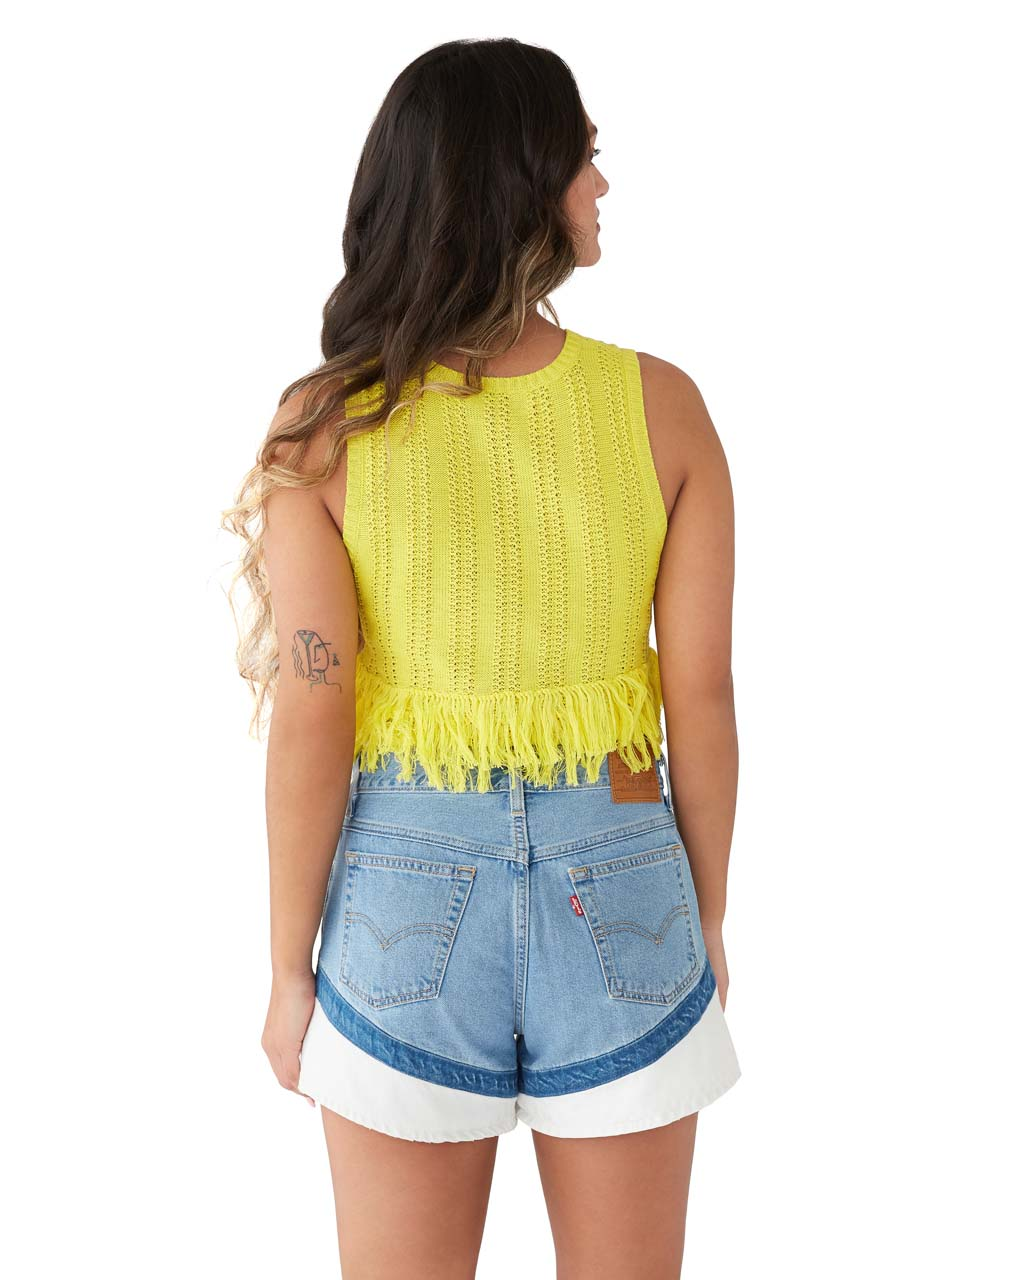 back view of brunette model shown wearing a yellow fringe tank paired with jean shorts